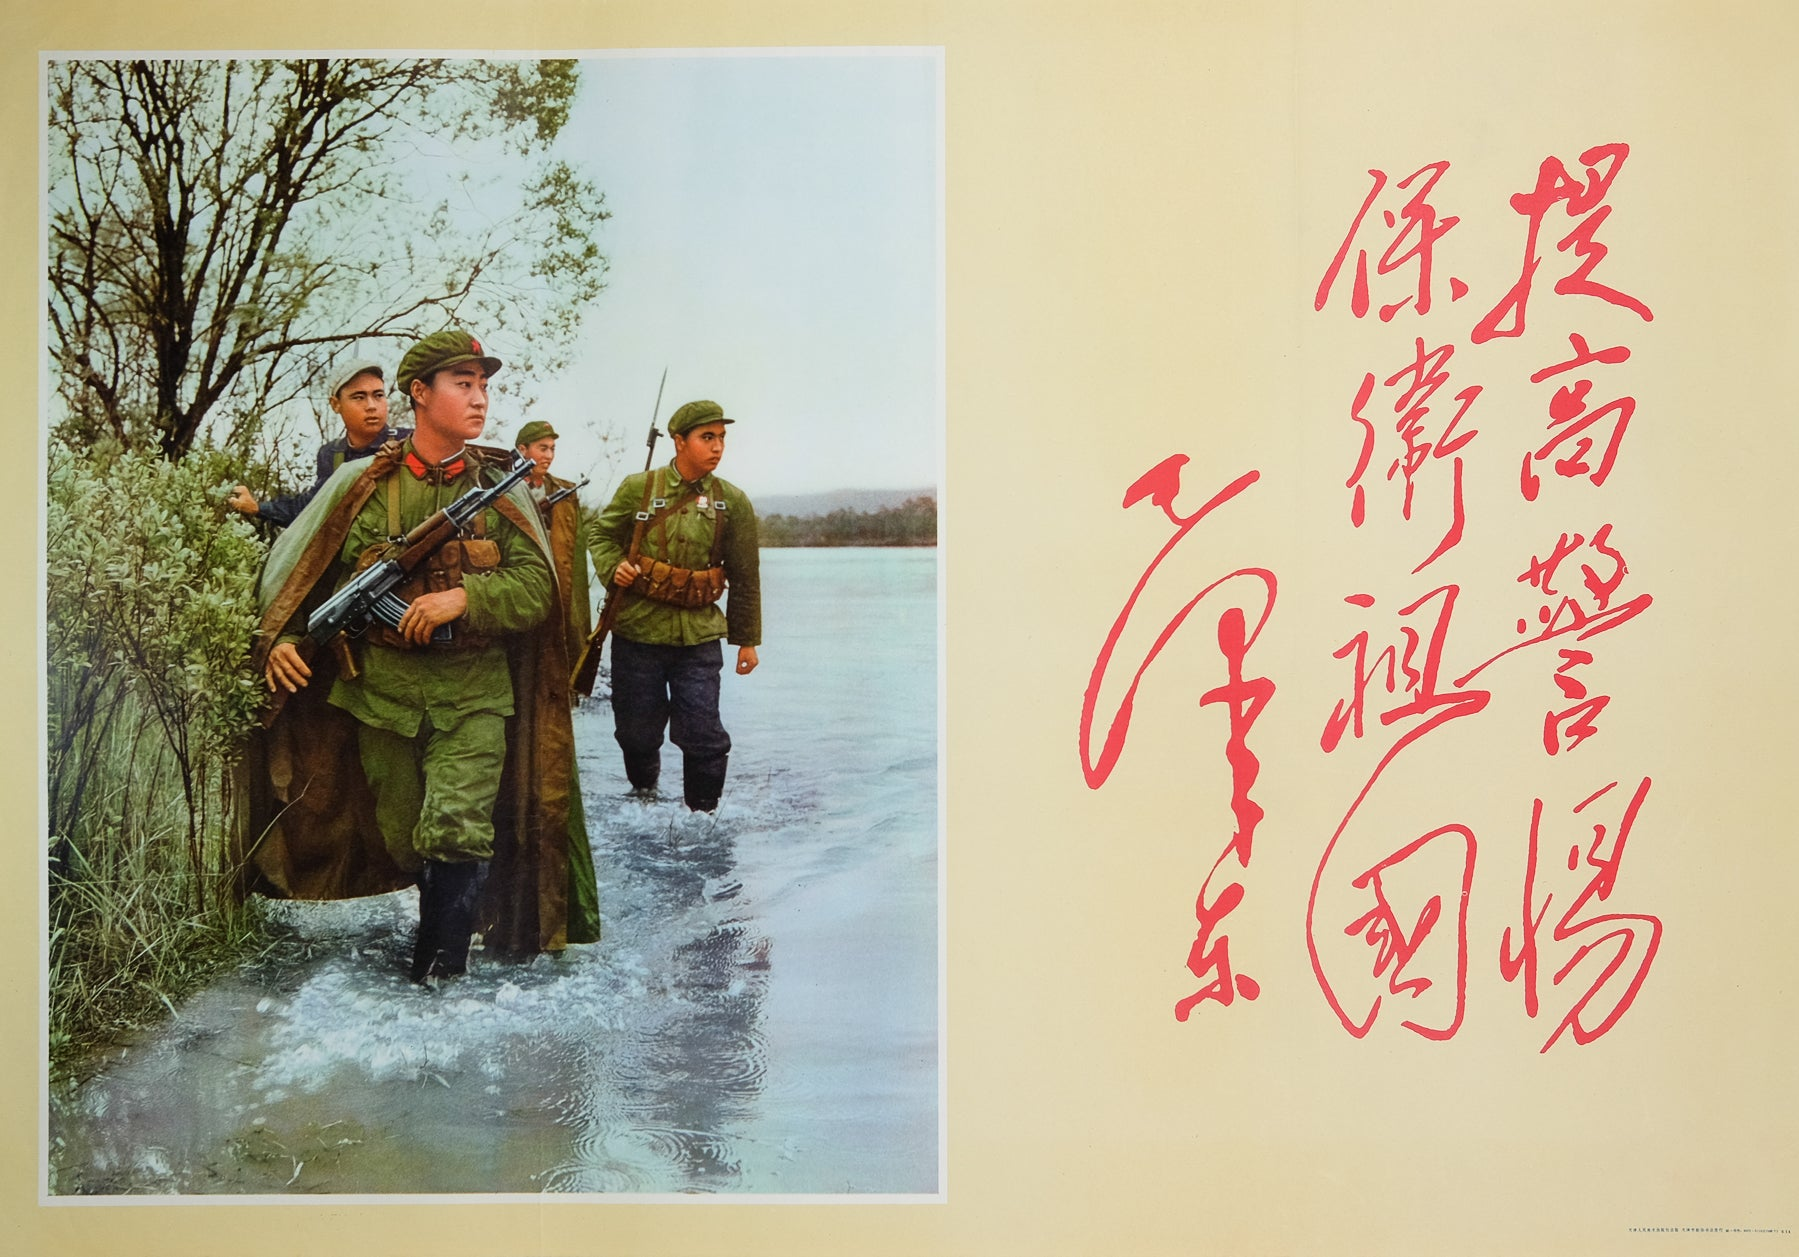 Image of 1970 Chinese poster Increase vigilance, safeguard our country